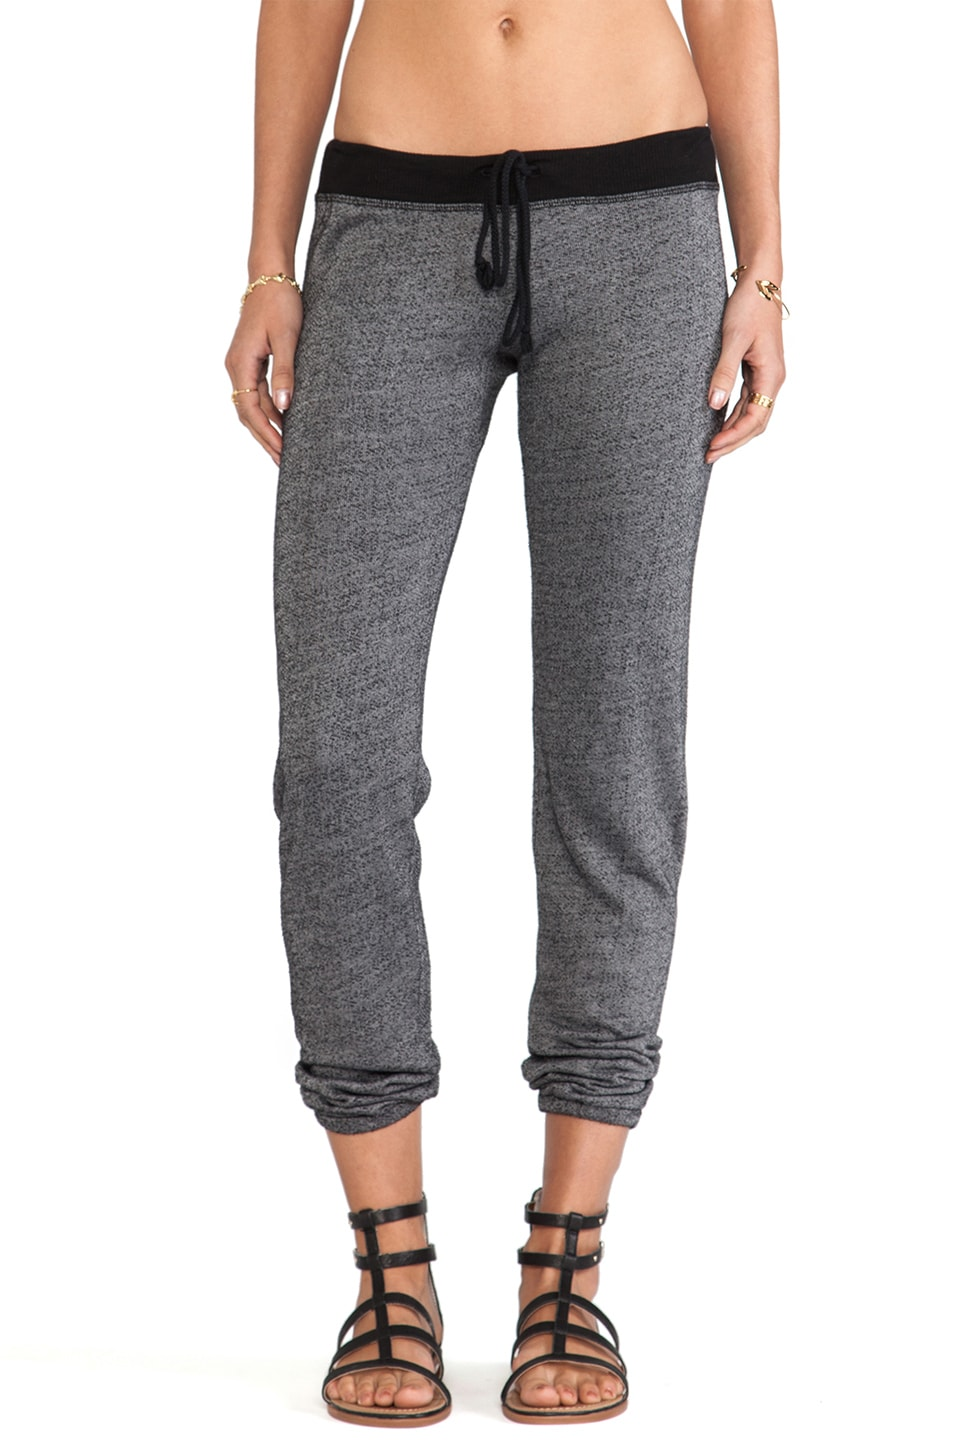 Saint Grace Sam Sweatpant in Black